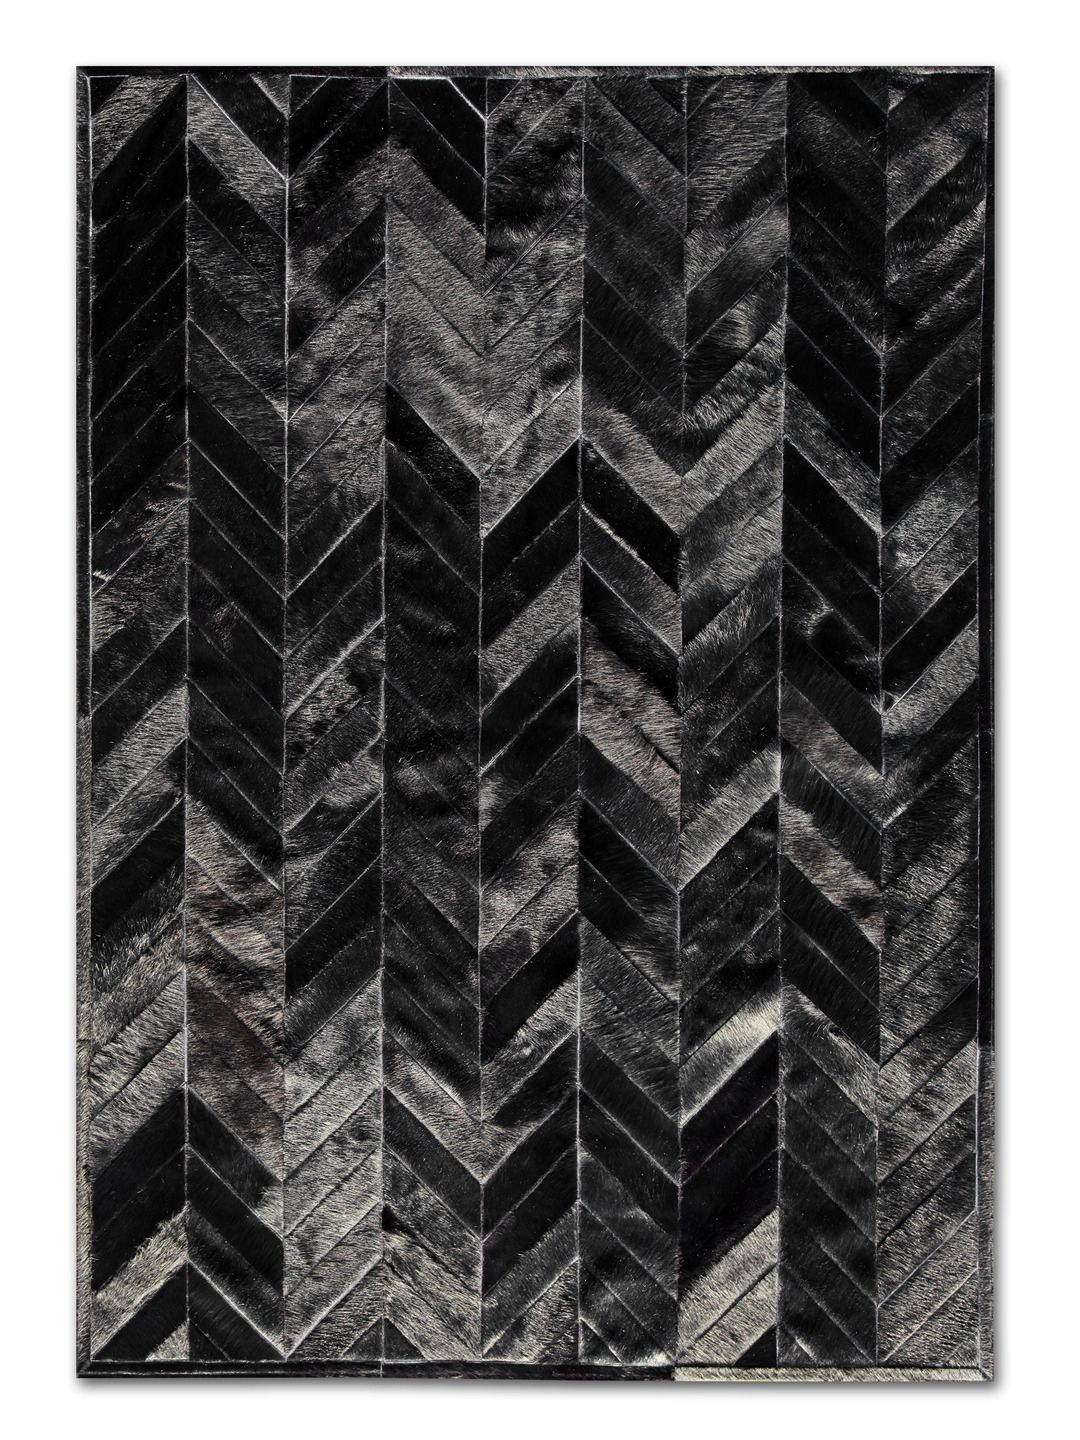 Yves Patchwork Cowhide Rug I Love The Coloring Of This I Just Wish It Wasn T Actually Made Of Fur Co Patchwork Cowhide Rug Cow Hide Rug Patchwork Cowhide